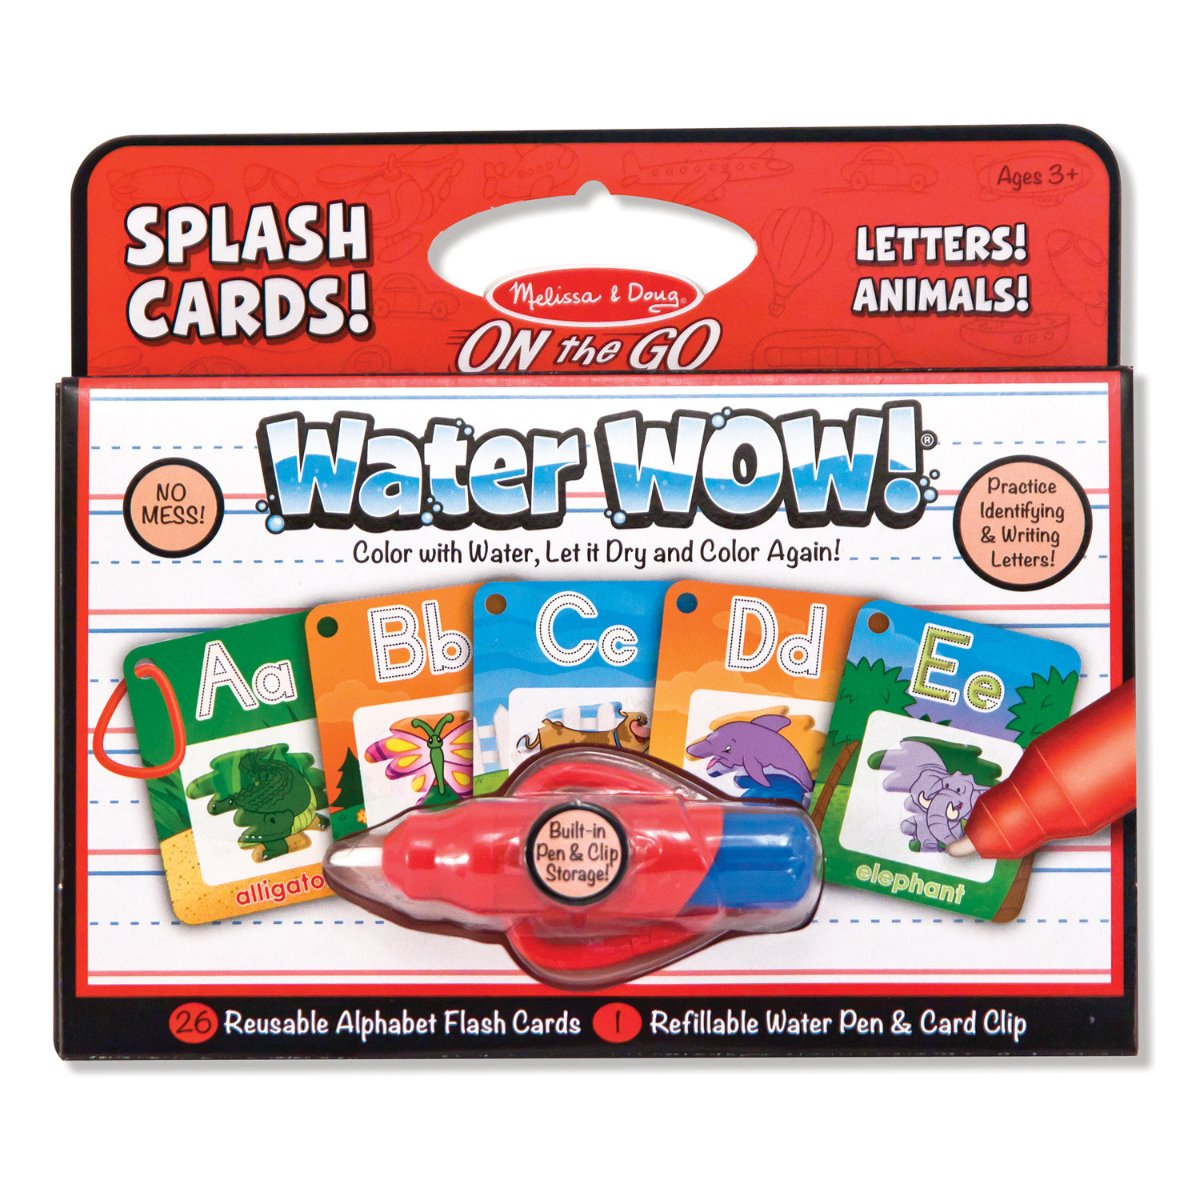 Melissa and Doug On the Go Water Wow Splash Cards with Letters and Animals